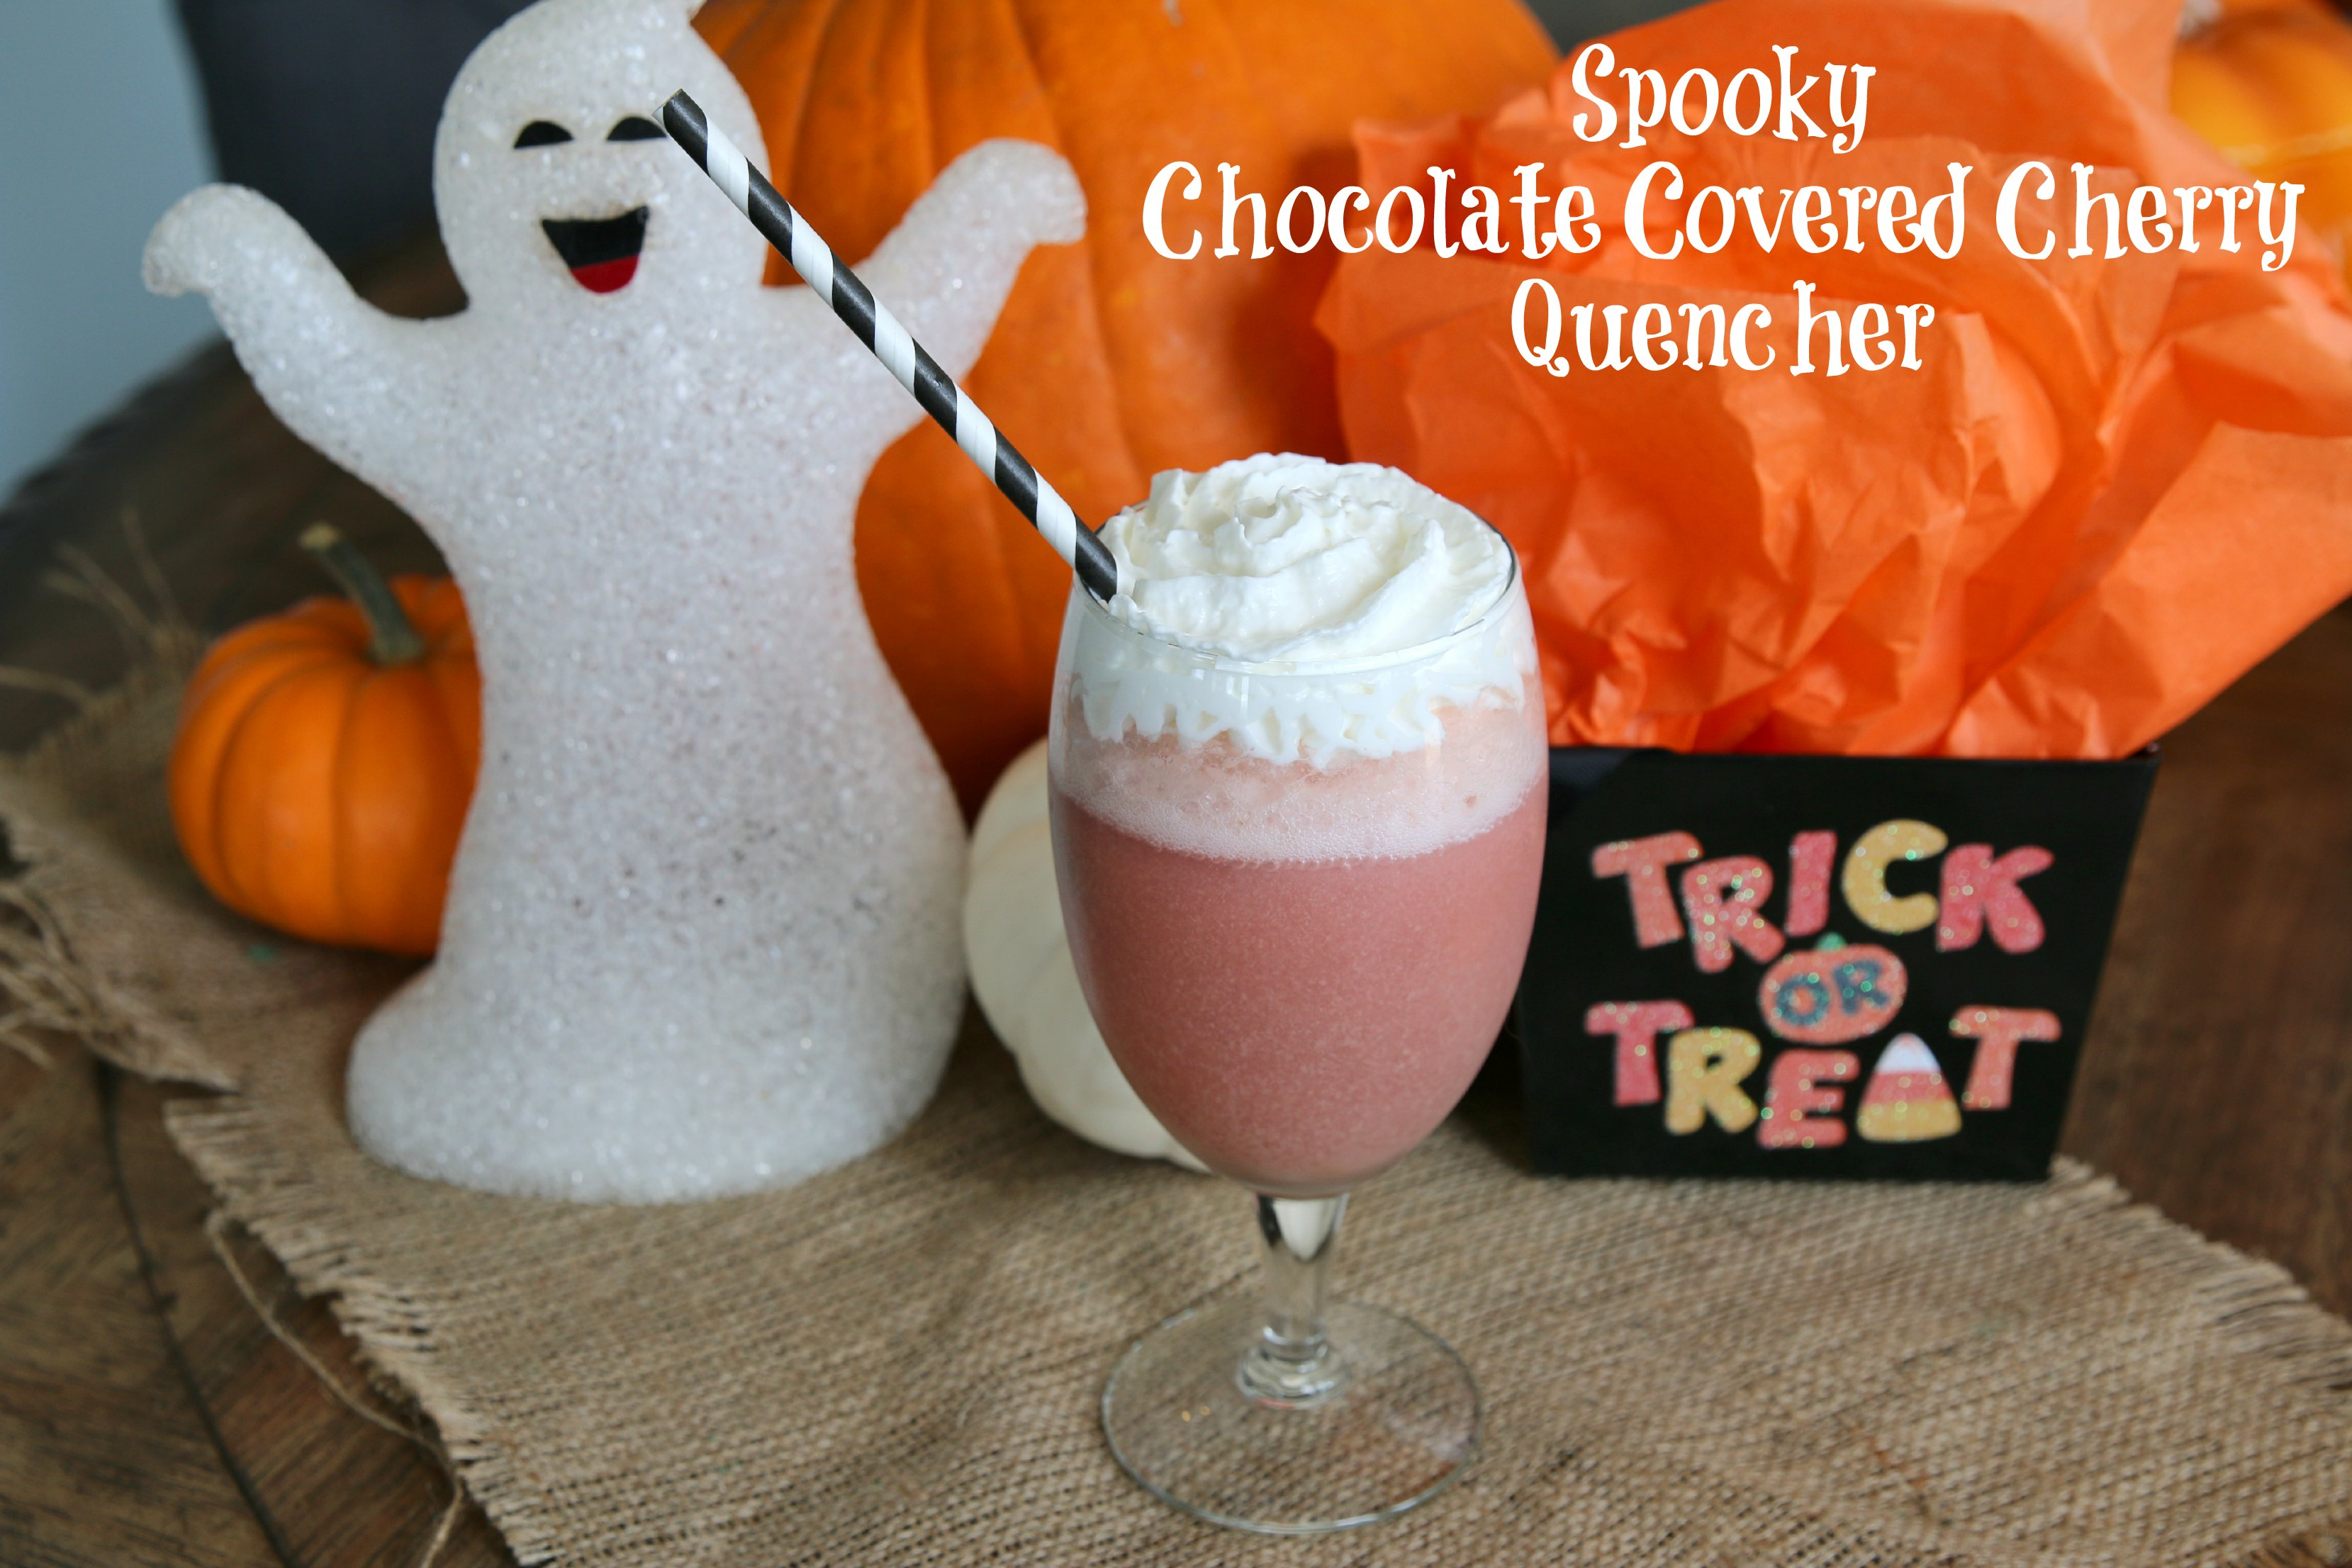 spooky chocolate covered cherry quencher